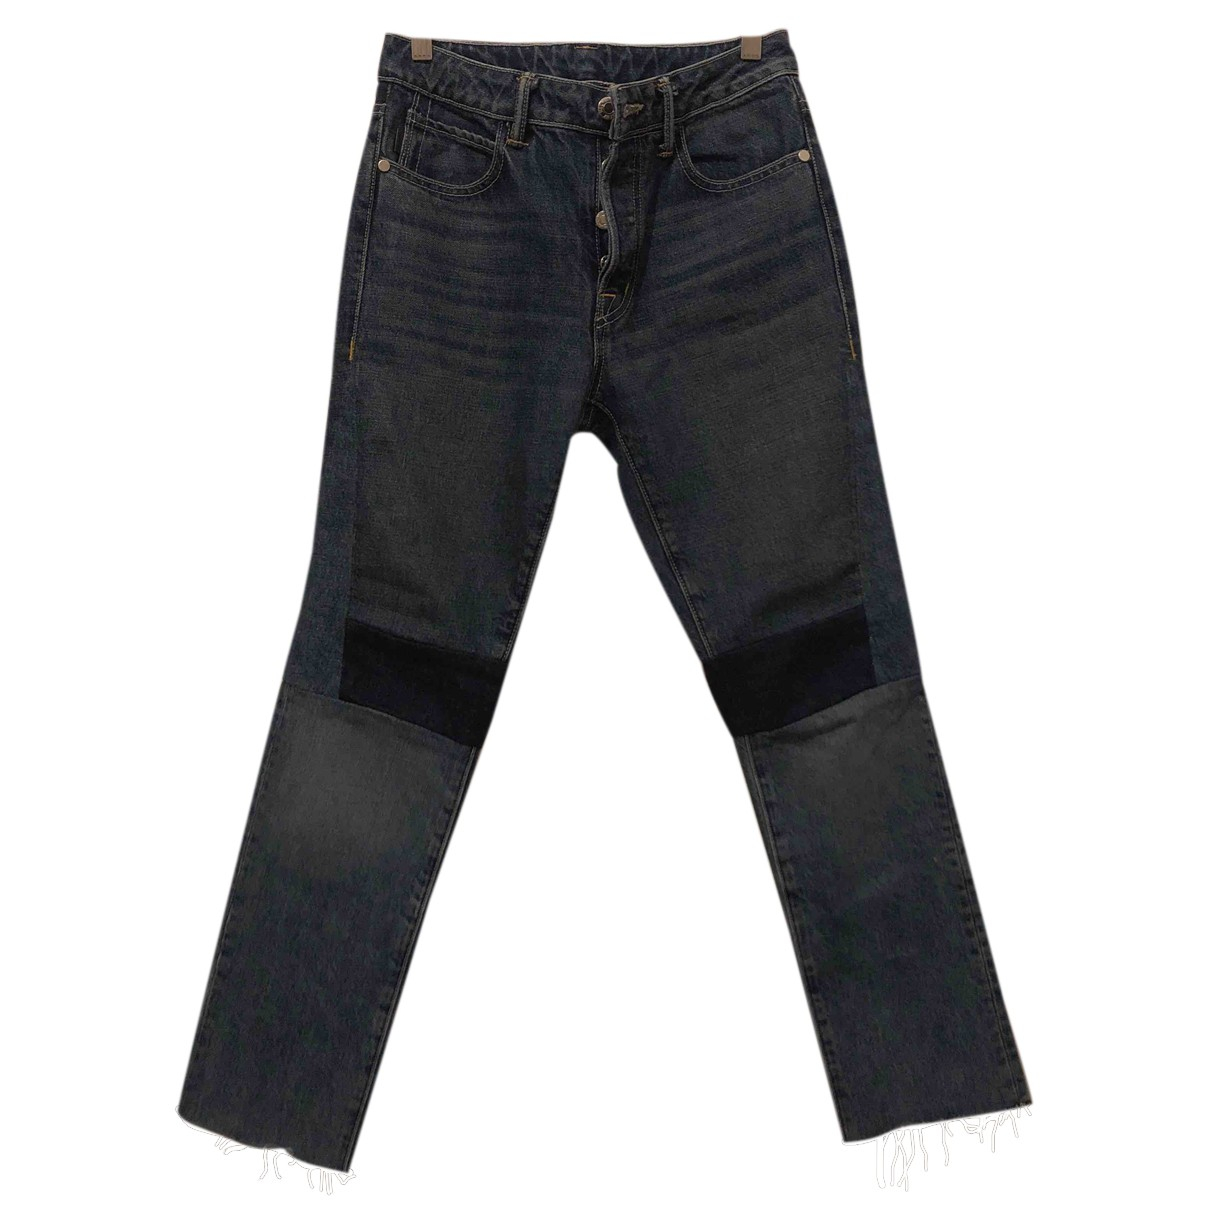 Helmut Lang N Navy Cotton Jeans for Women 25 US